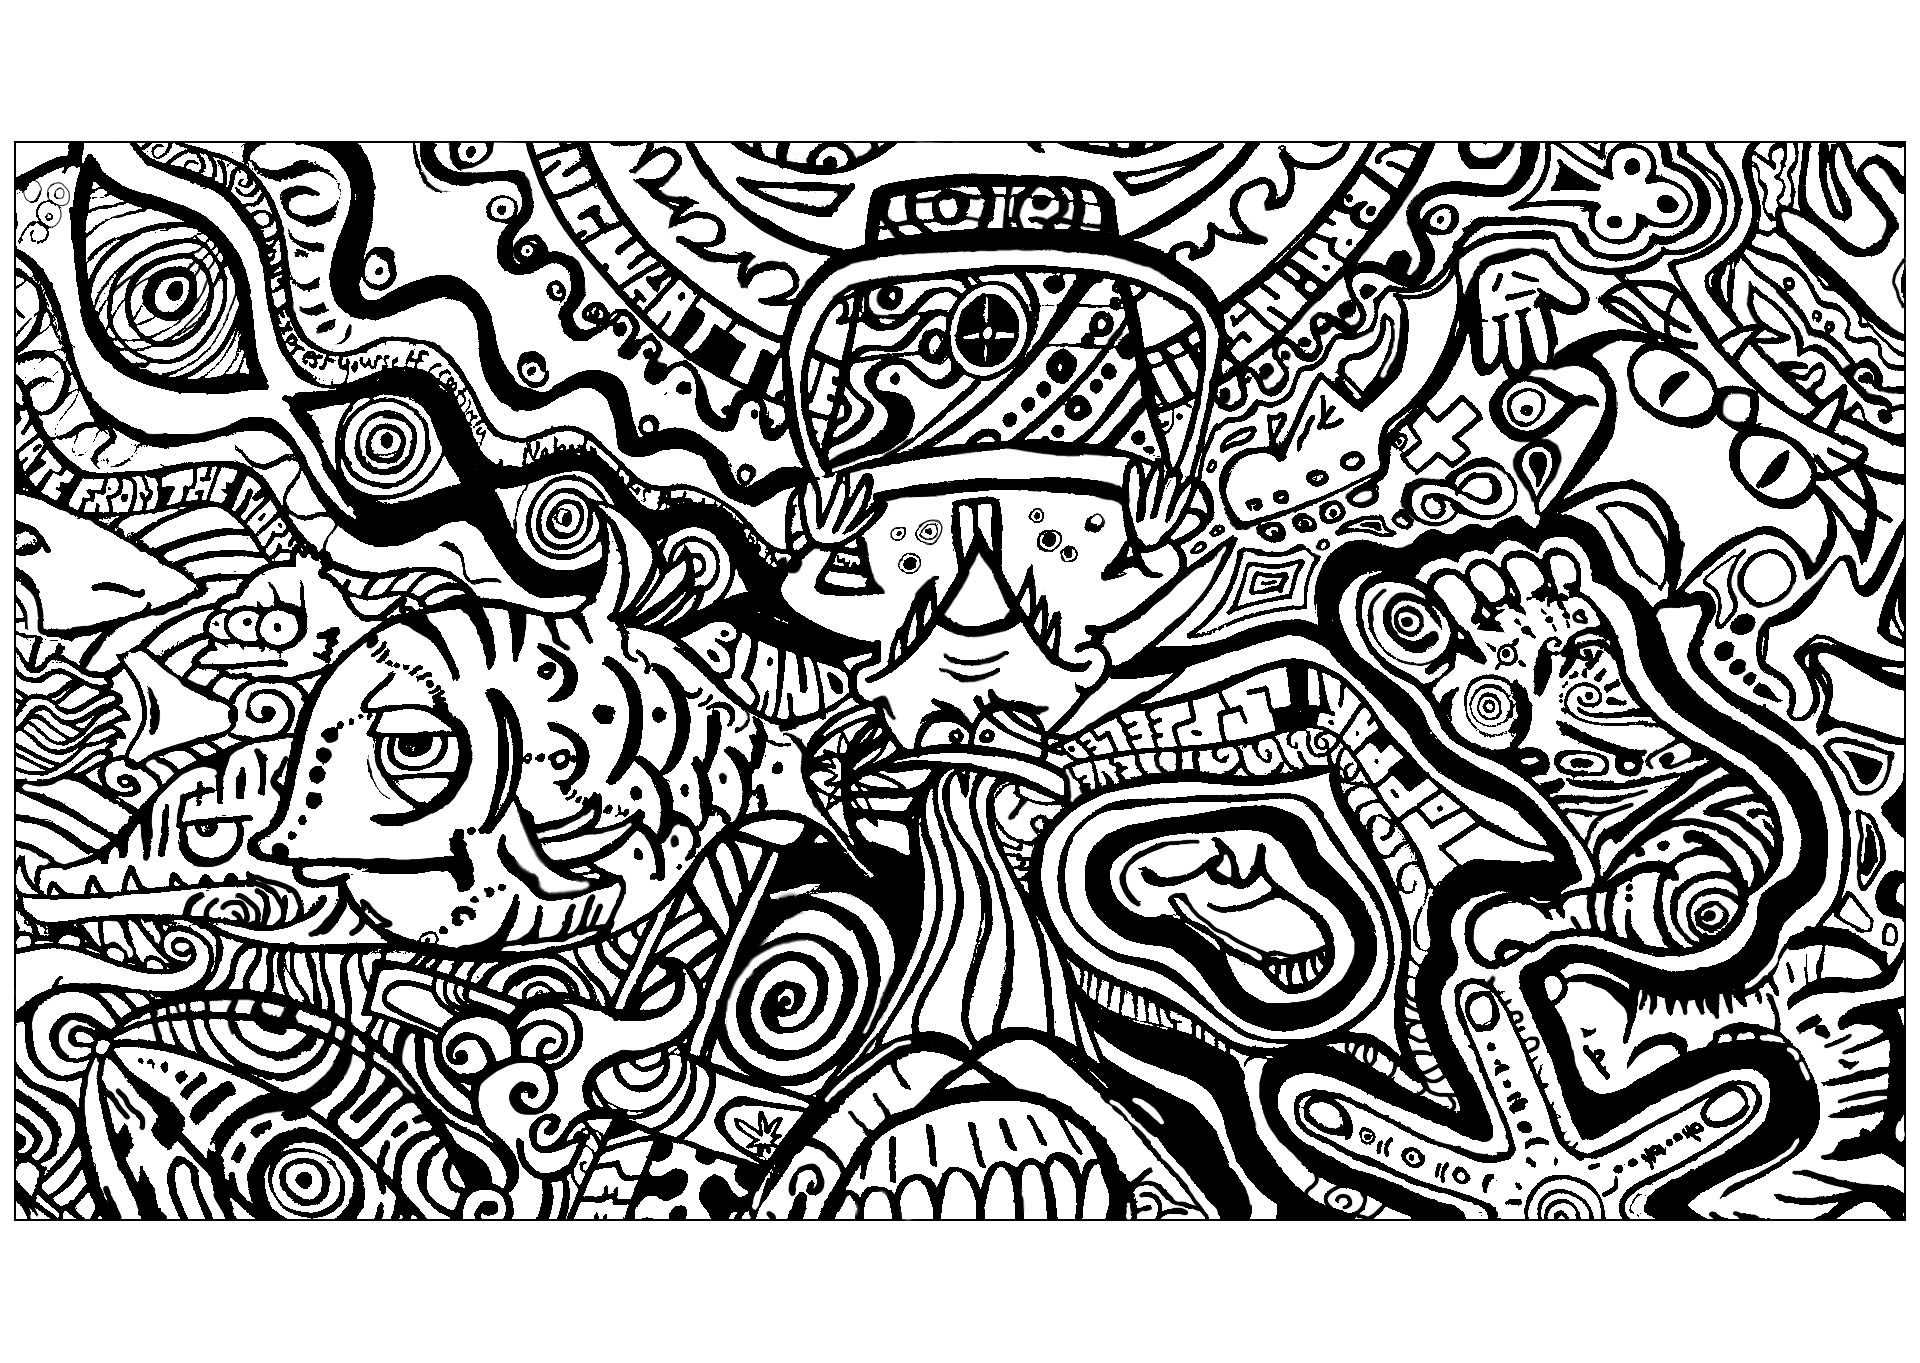 Psychedelic drawing with different subjects including a feet and a fish